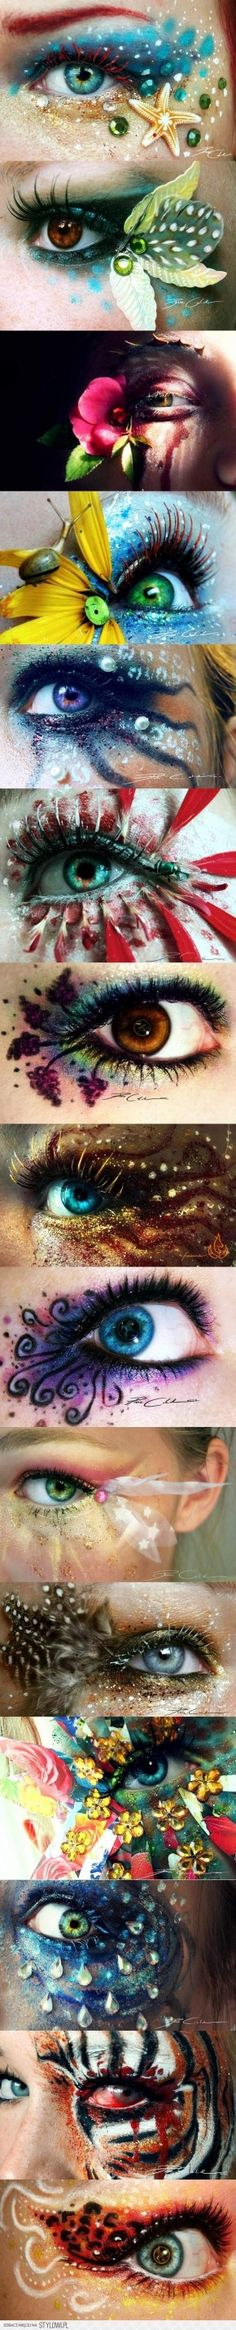 WOW!!! Now this is MAKE-UP! Im so much in love with it 3